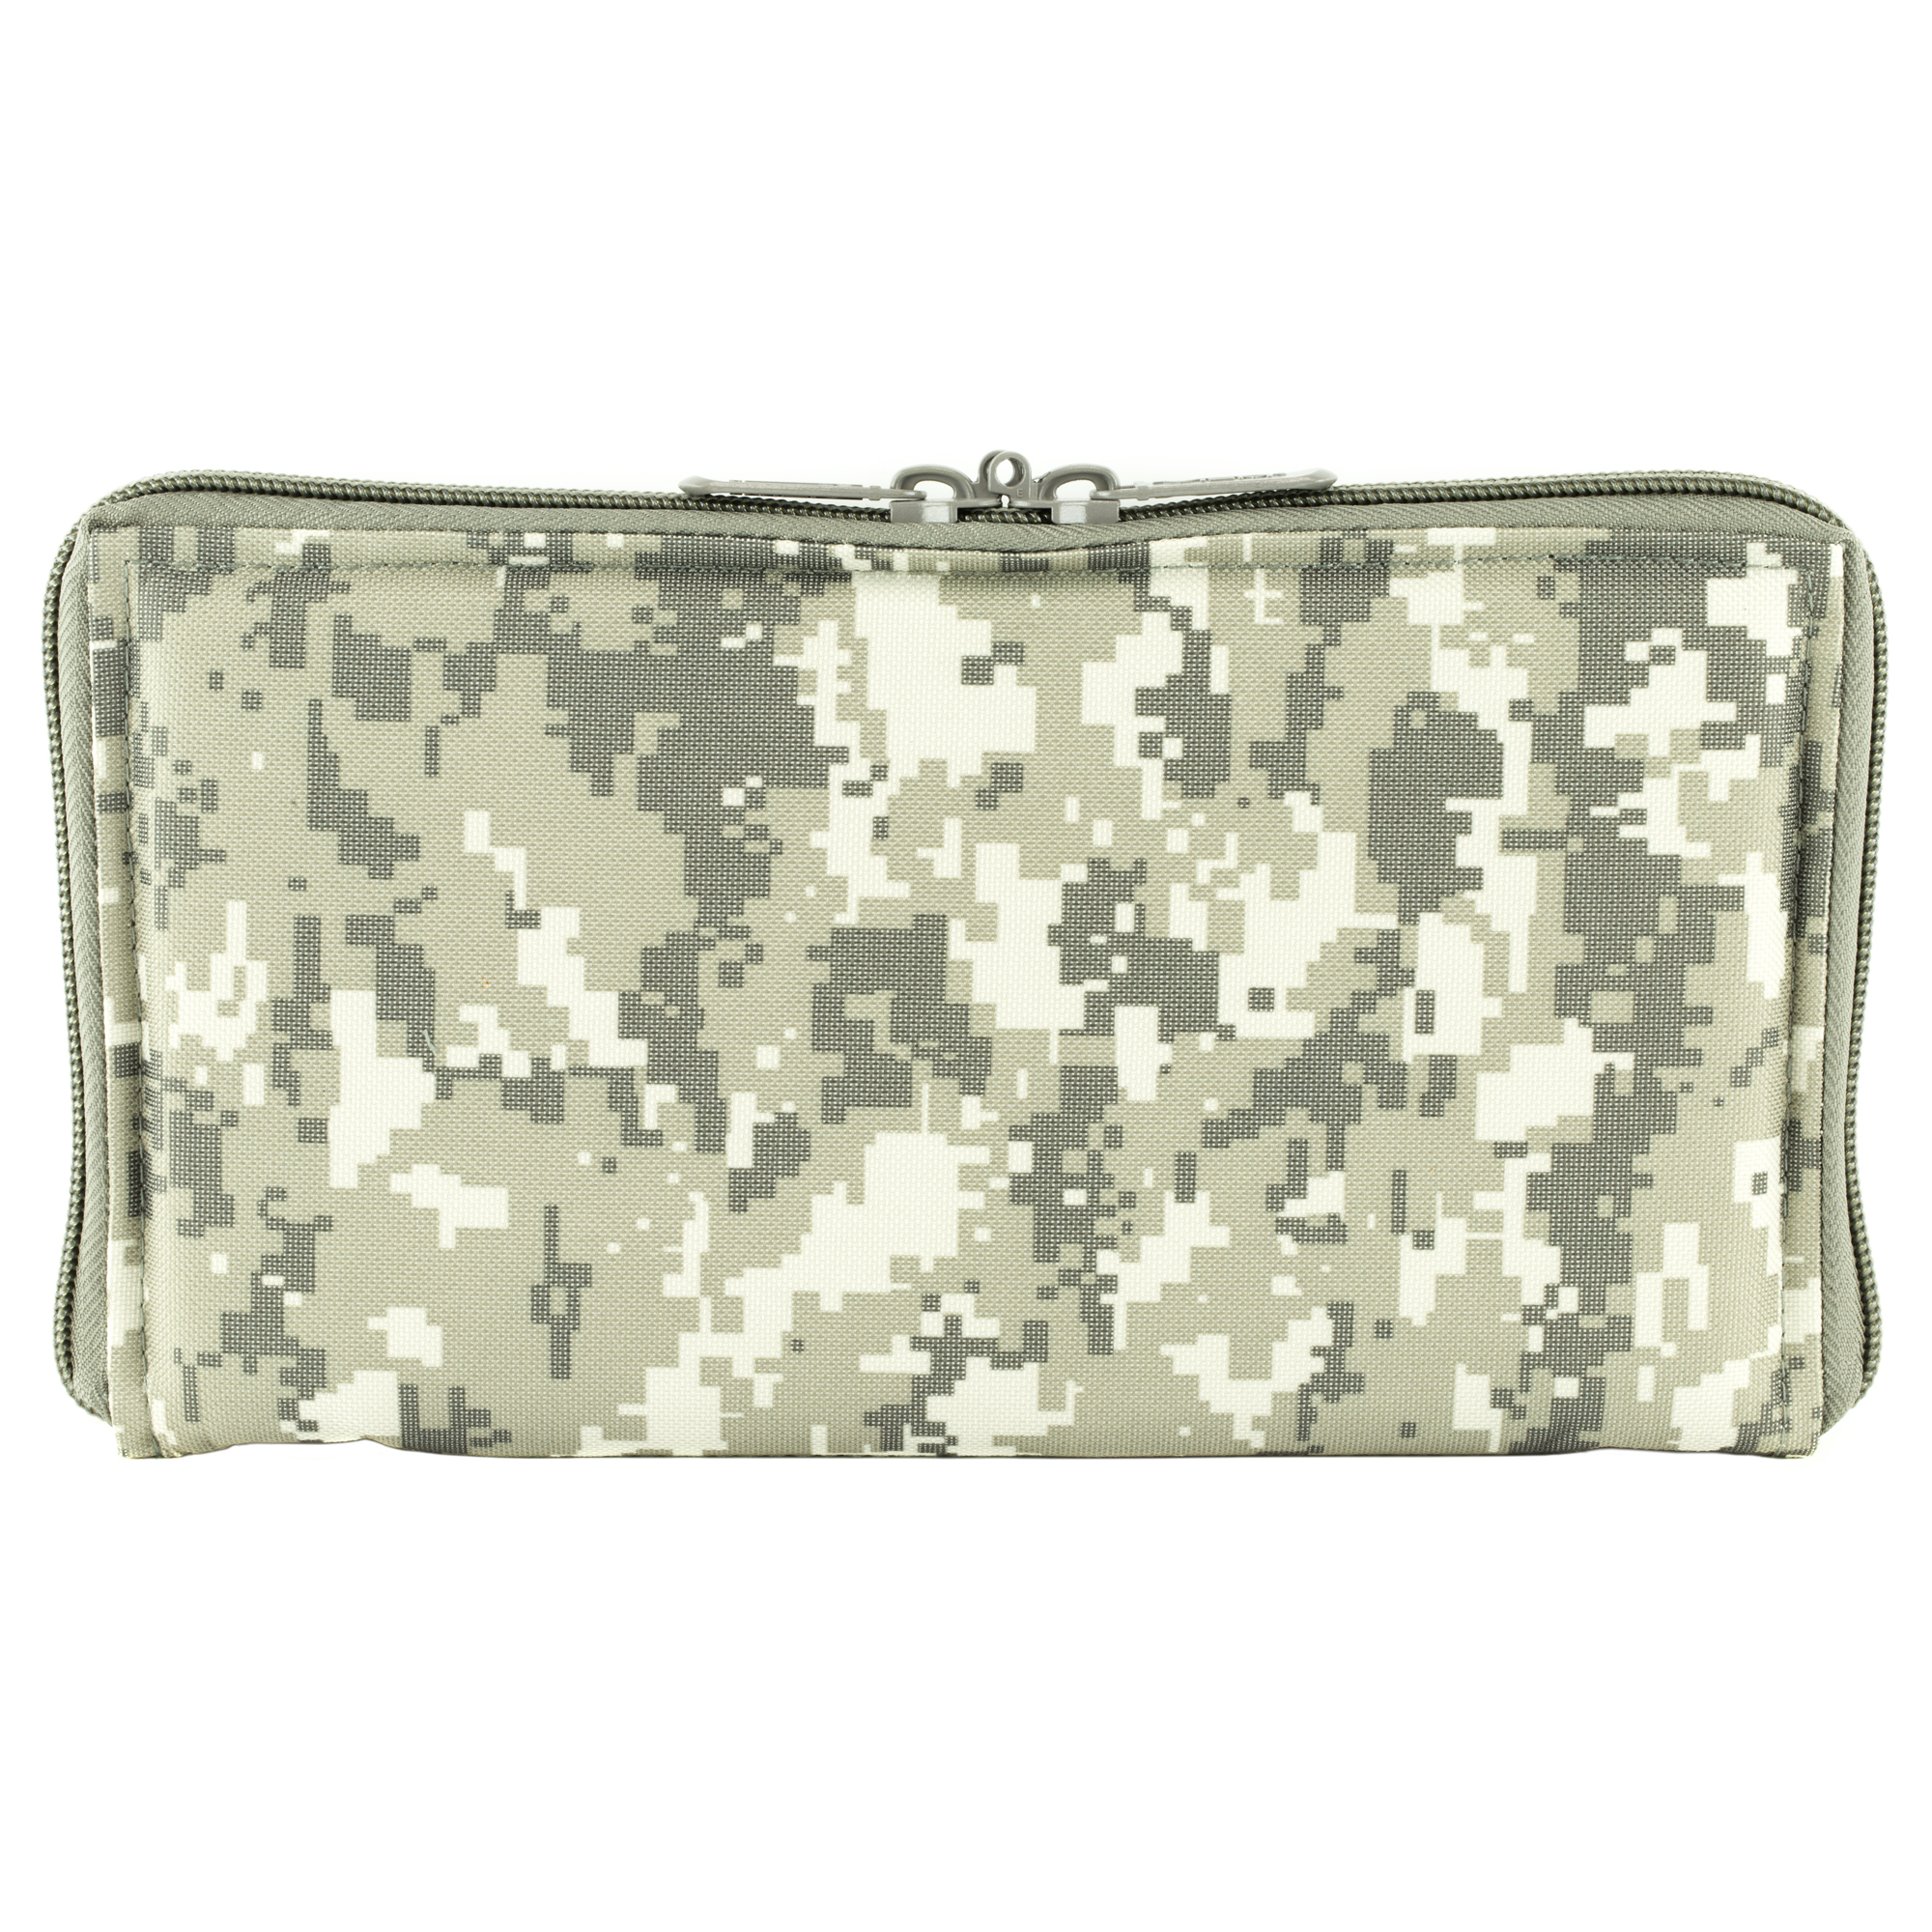 This pistol case range bag insert is constructed of tough PVC material. It's thick padding protects your guns while saving space.